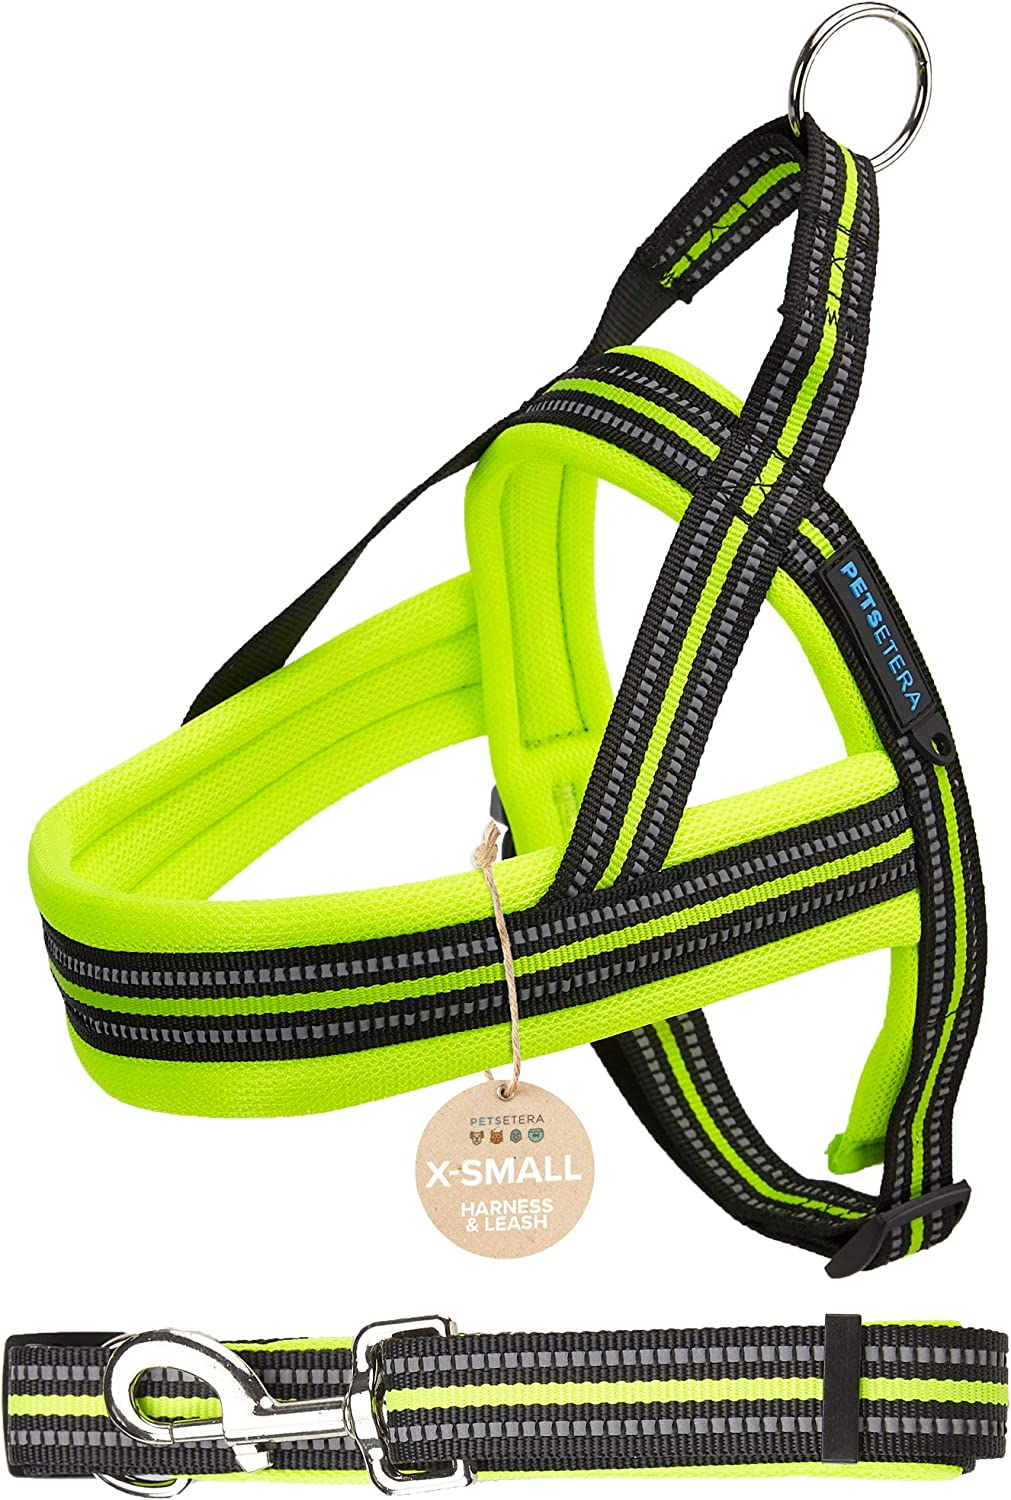 Petsetera Green Pet Leash and Harness Set  Ultra Comfortable Padded Mesh, No Pull Design  Premium Grade Adjustable Reflective Strap  Training, Walking and Jogging Collar for Dogs, XSmall